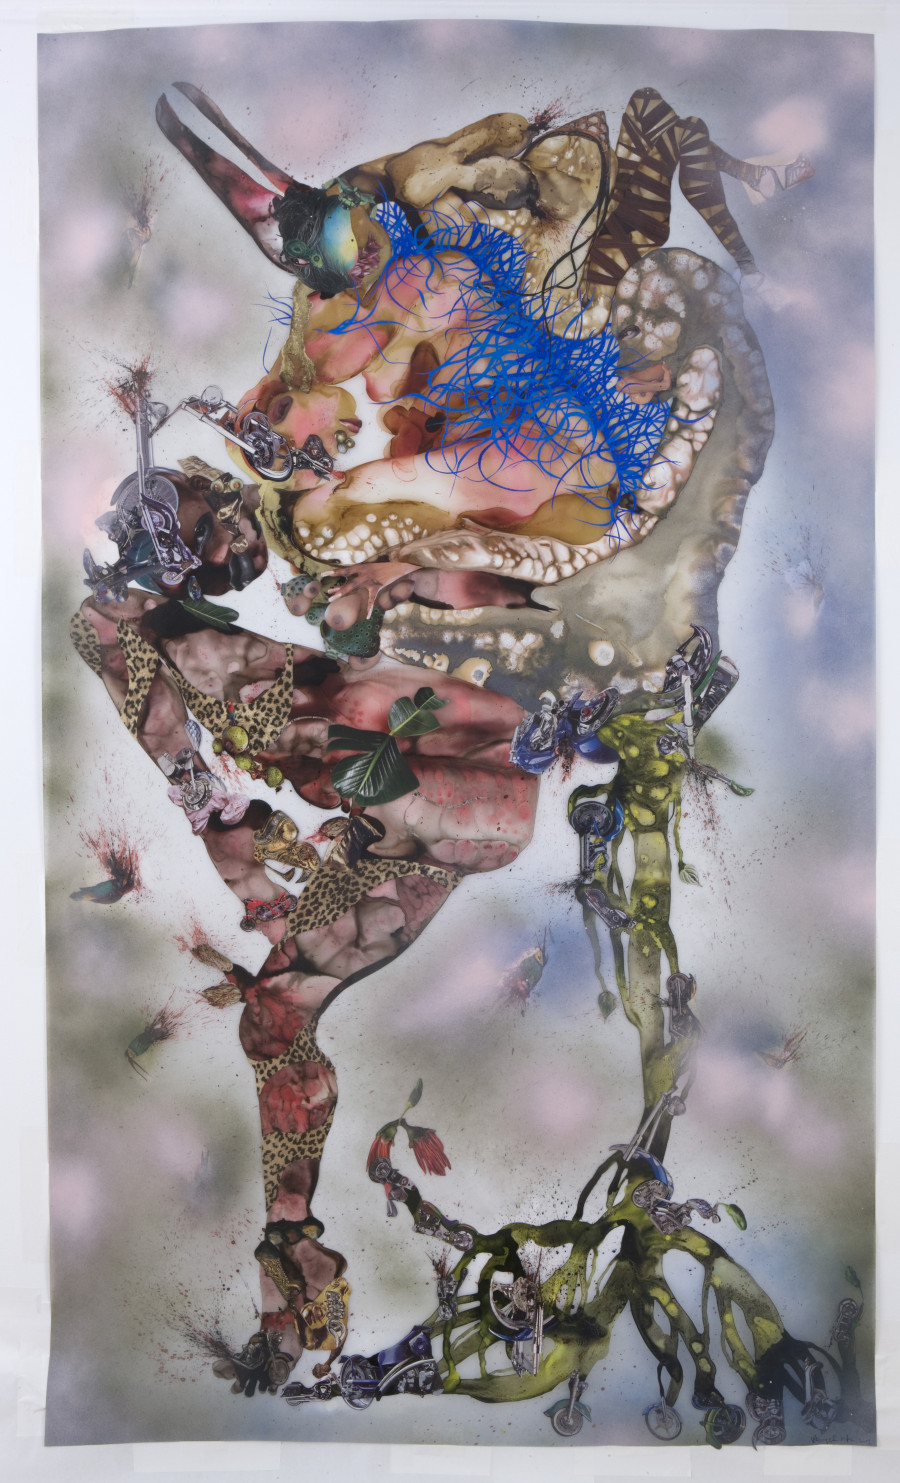 Wangechi Mutu, This you call civilization?, 2008. Courtesy of the artist and Susanne Vielmetter Los Angeles Projects